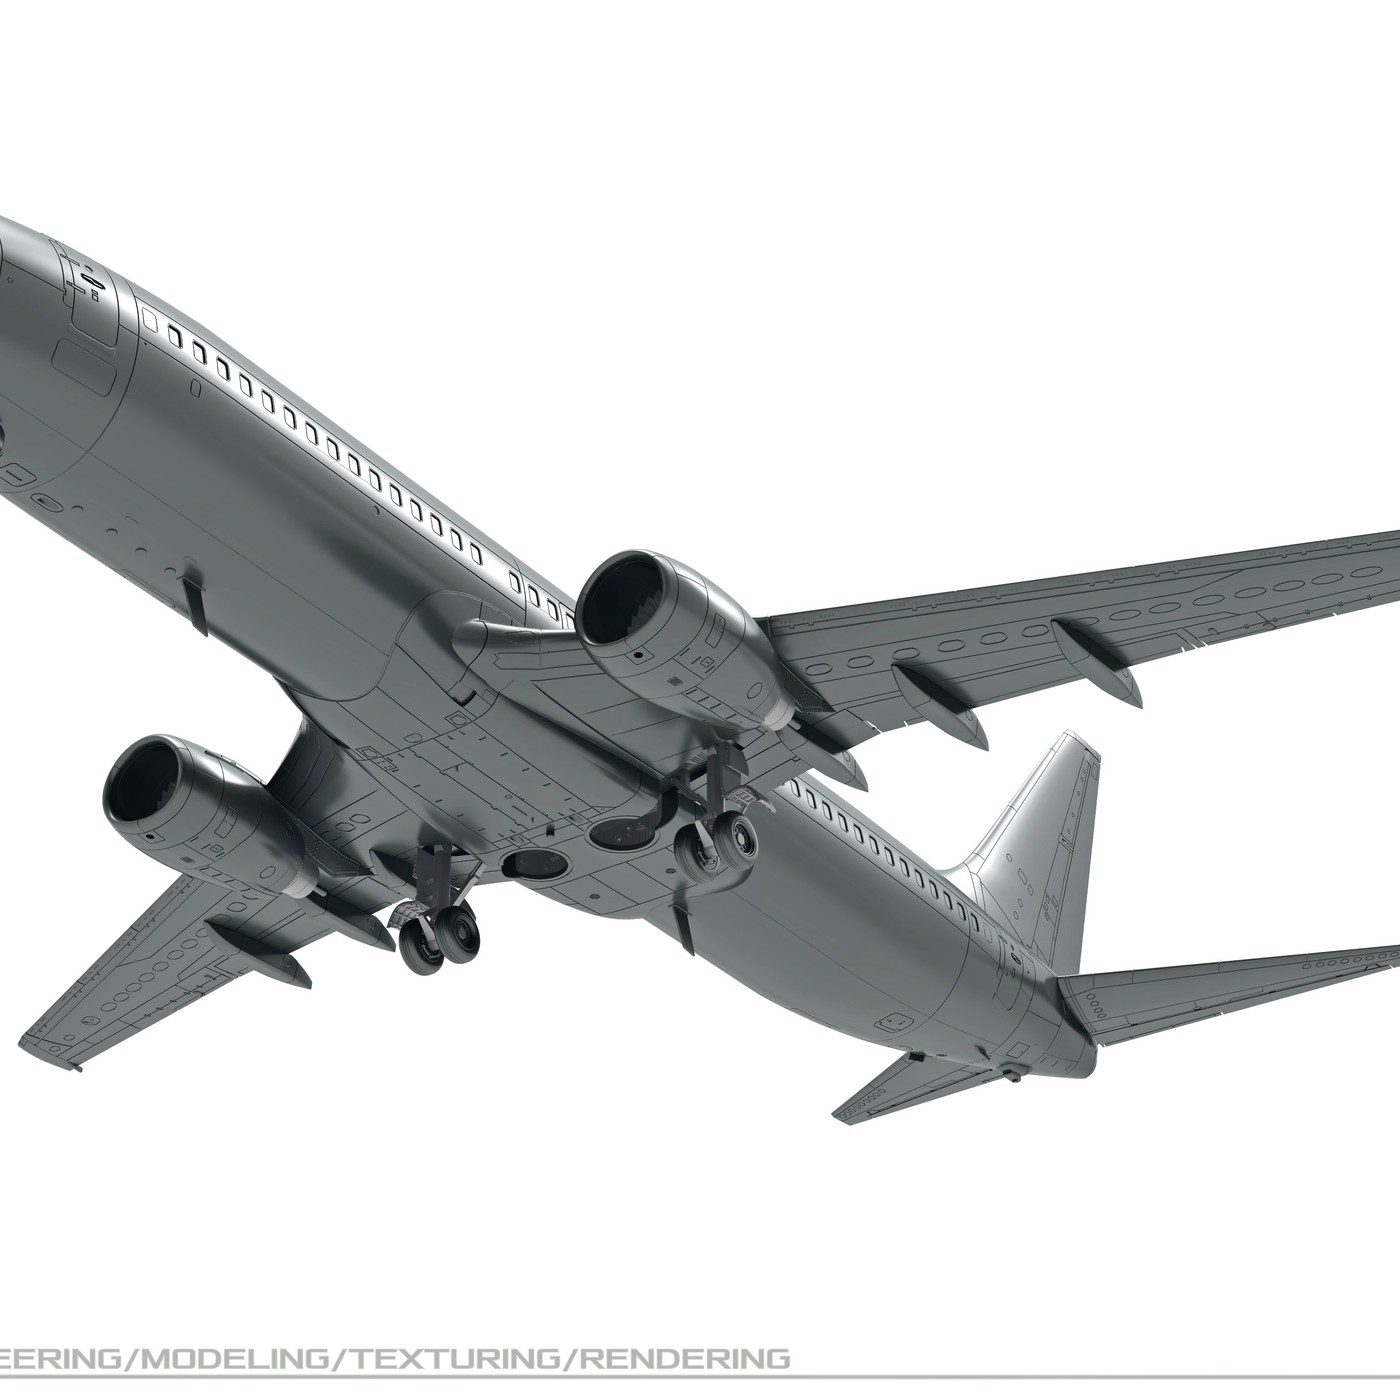 Model (designer) aircraft B-737-800